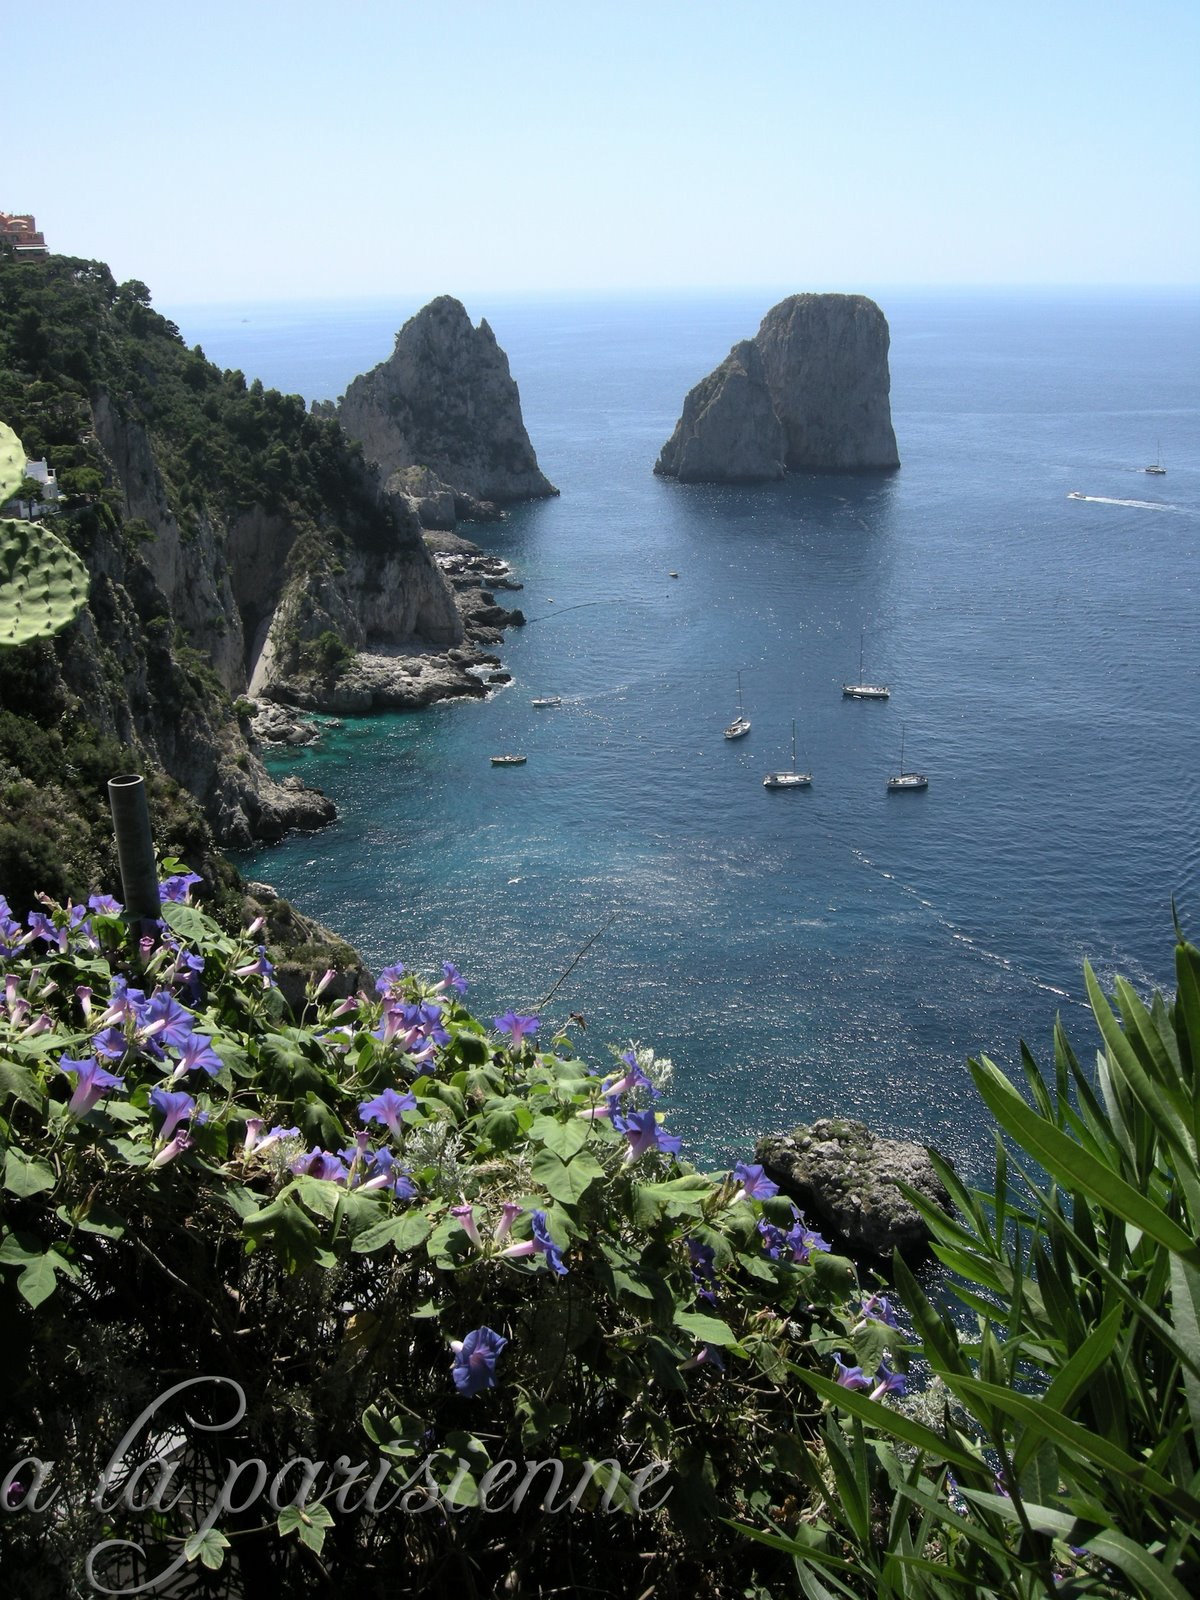 Take Me to the Isle of Capri